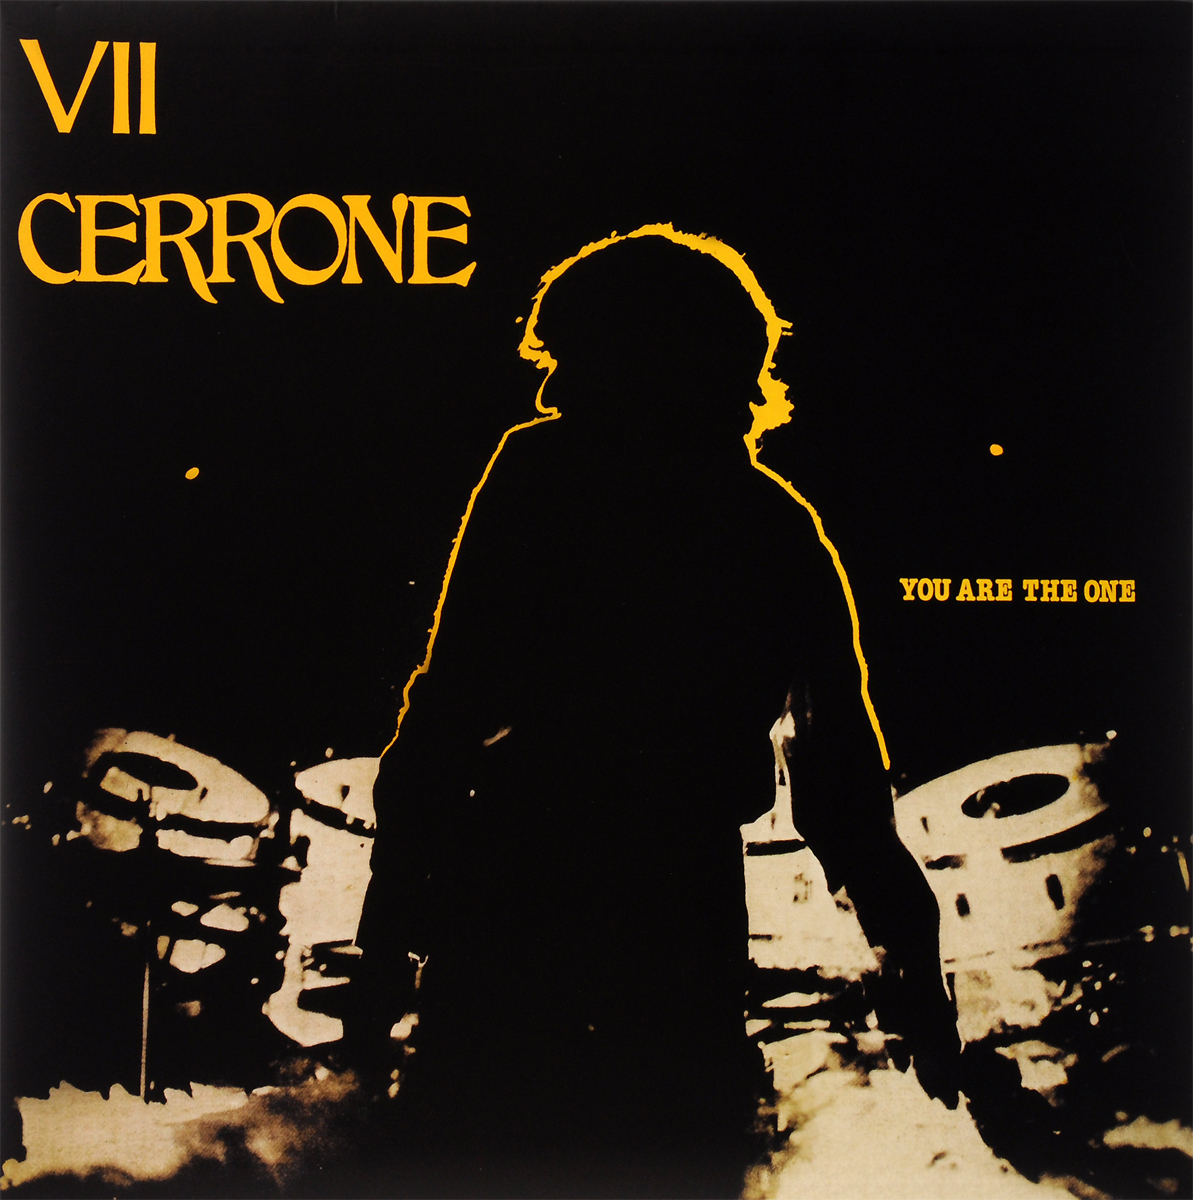 Cerrone,Джоcелин Браун Cerrone, Jocelyn Brown. Cerrone VII. You Are The One (LP + CD)